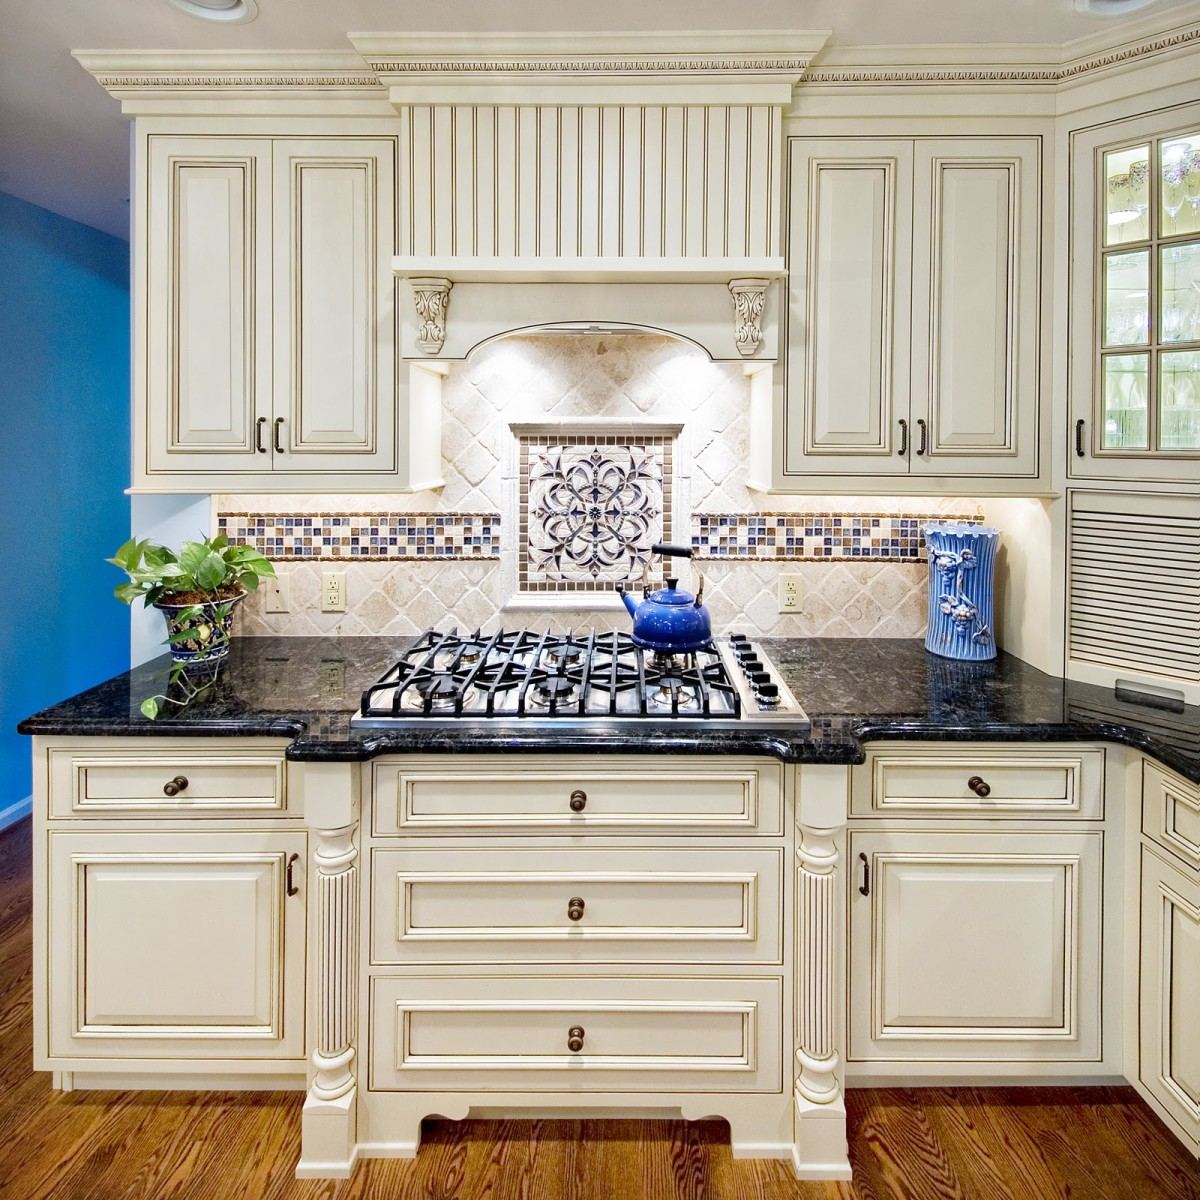 6 Design Ideas For Your Range Backsplash